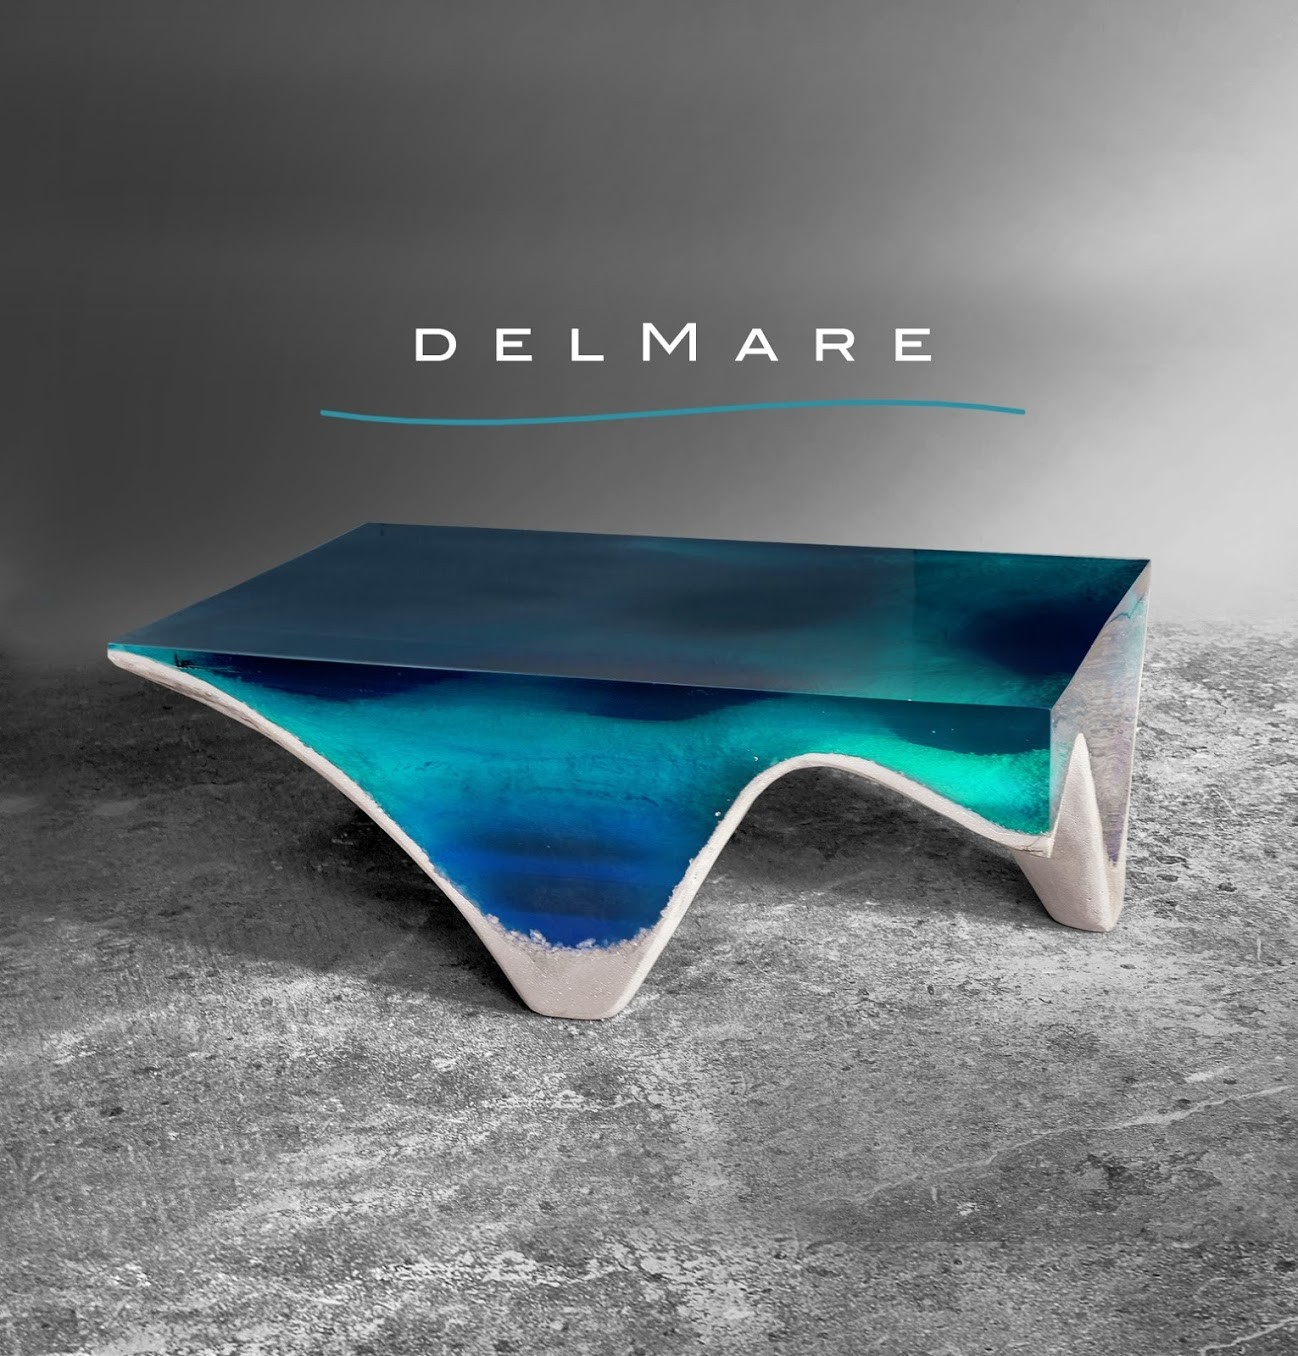 table delmare en marbre et verre acrylique par eduard. Black Bedroom Furniture Sets. Home Design Ideas